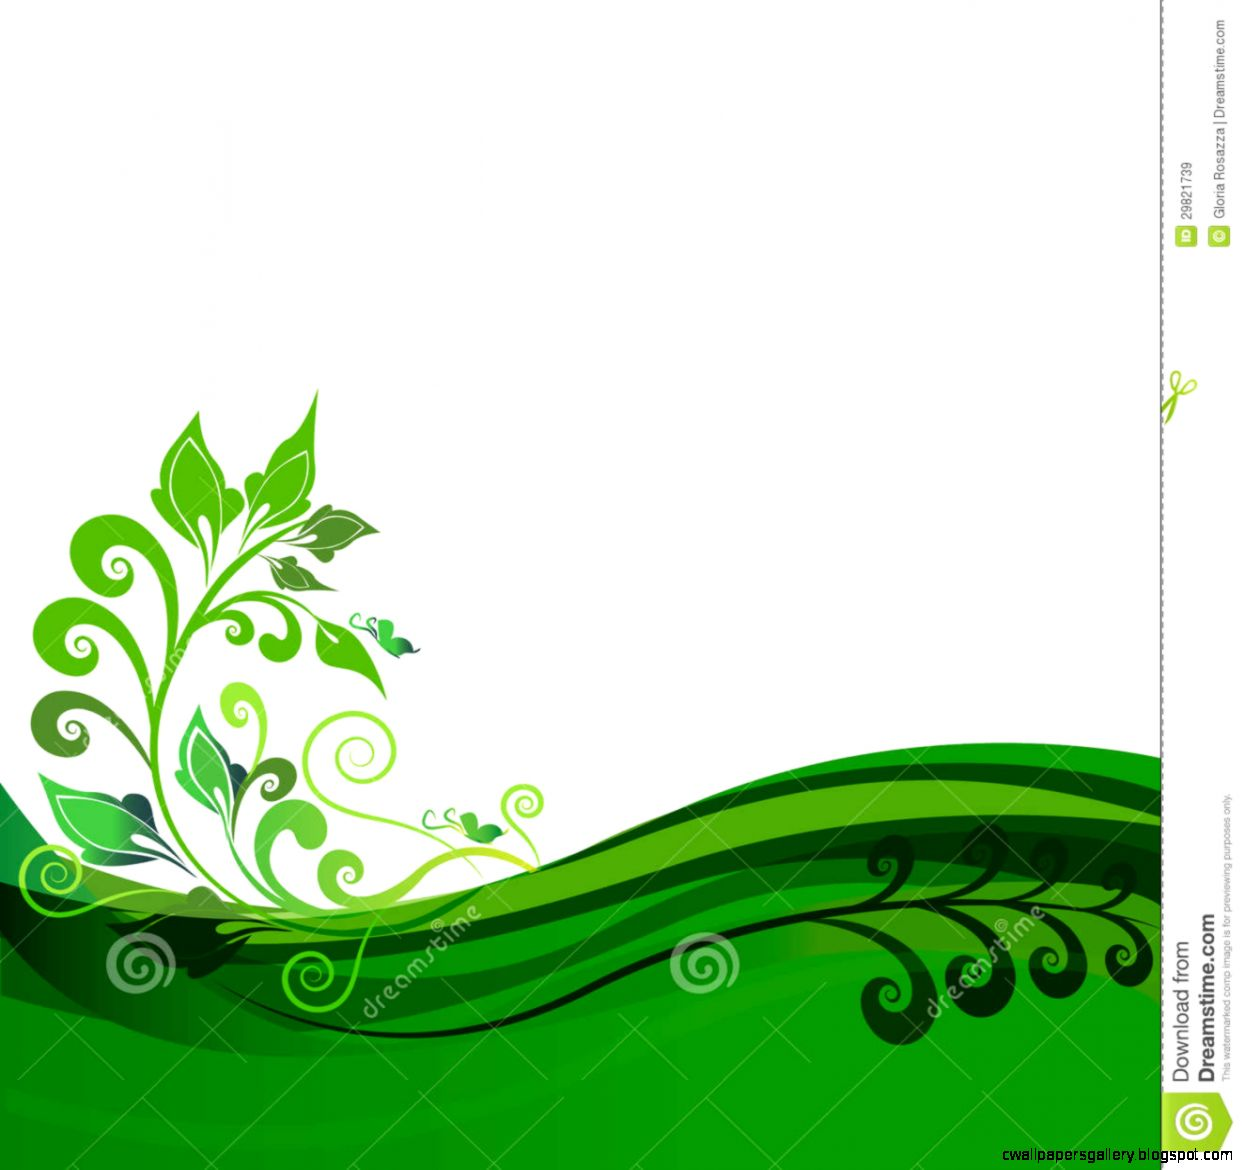 Green Fl Background Design Royalty Free Stock Images   Image